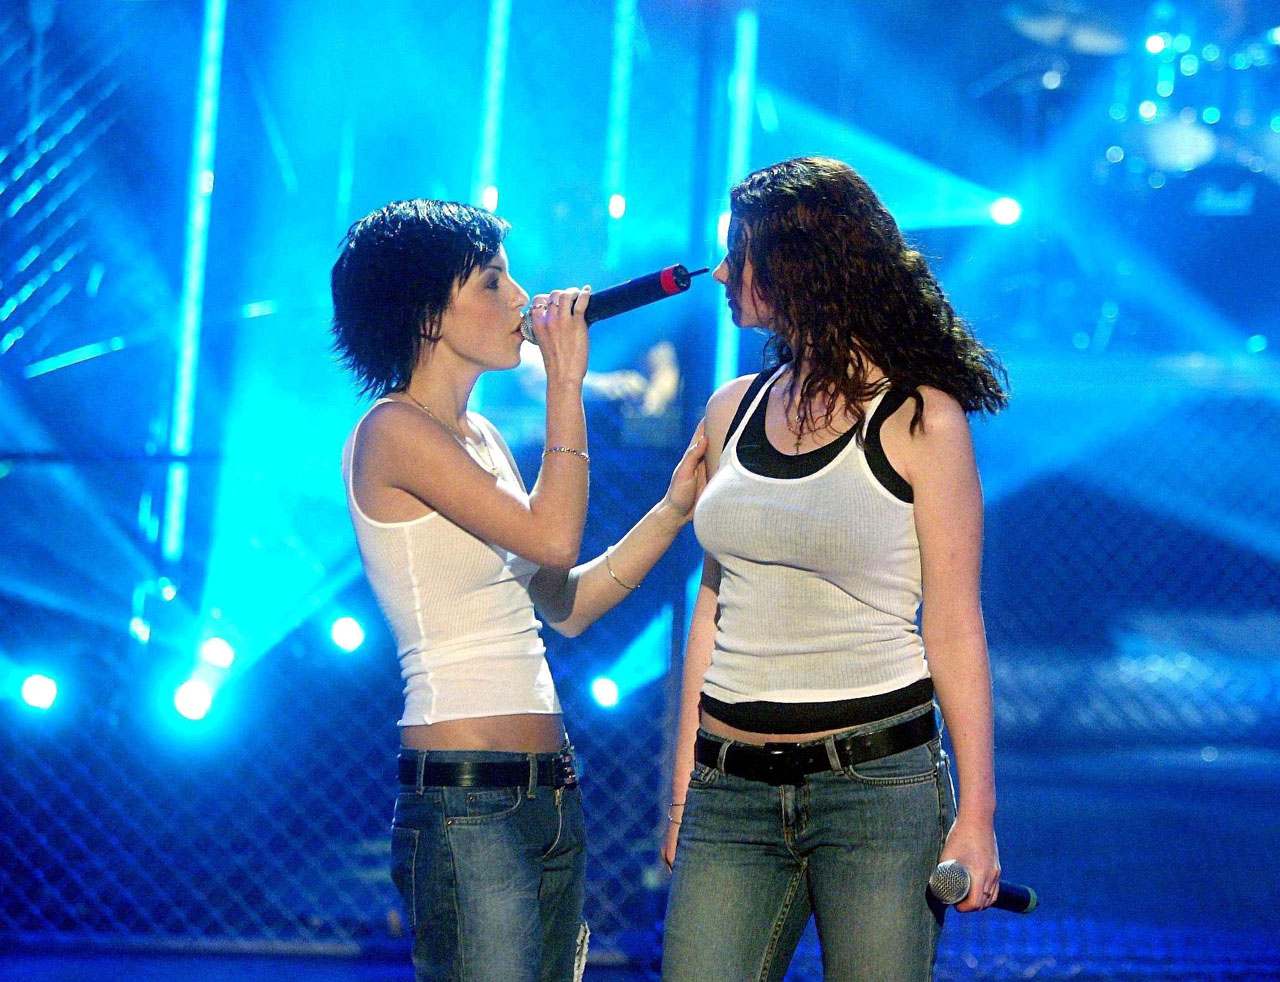 ТАТУ - Tatu Perform on Watten Das 22.03.2003